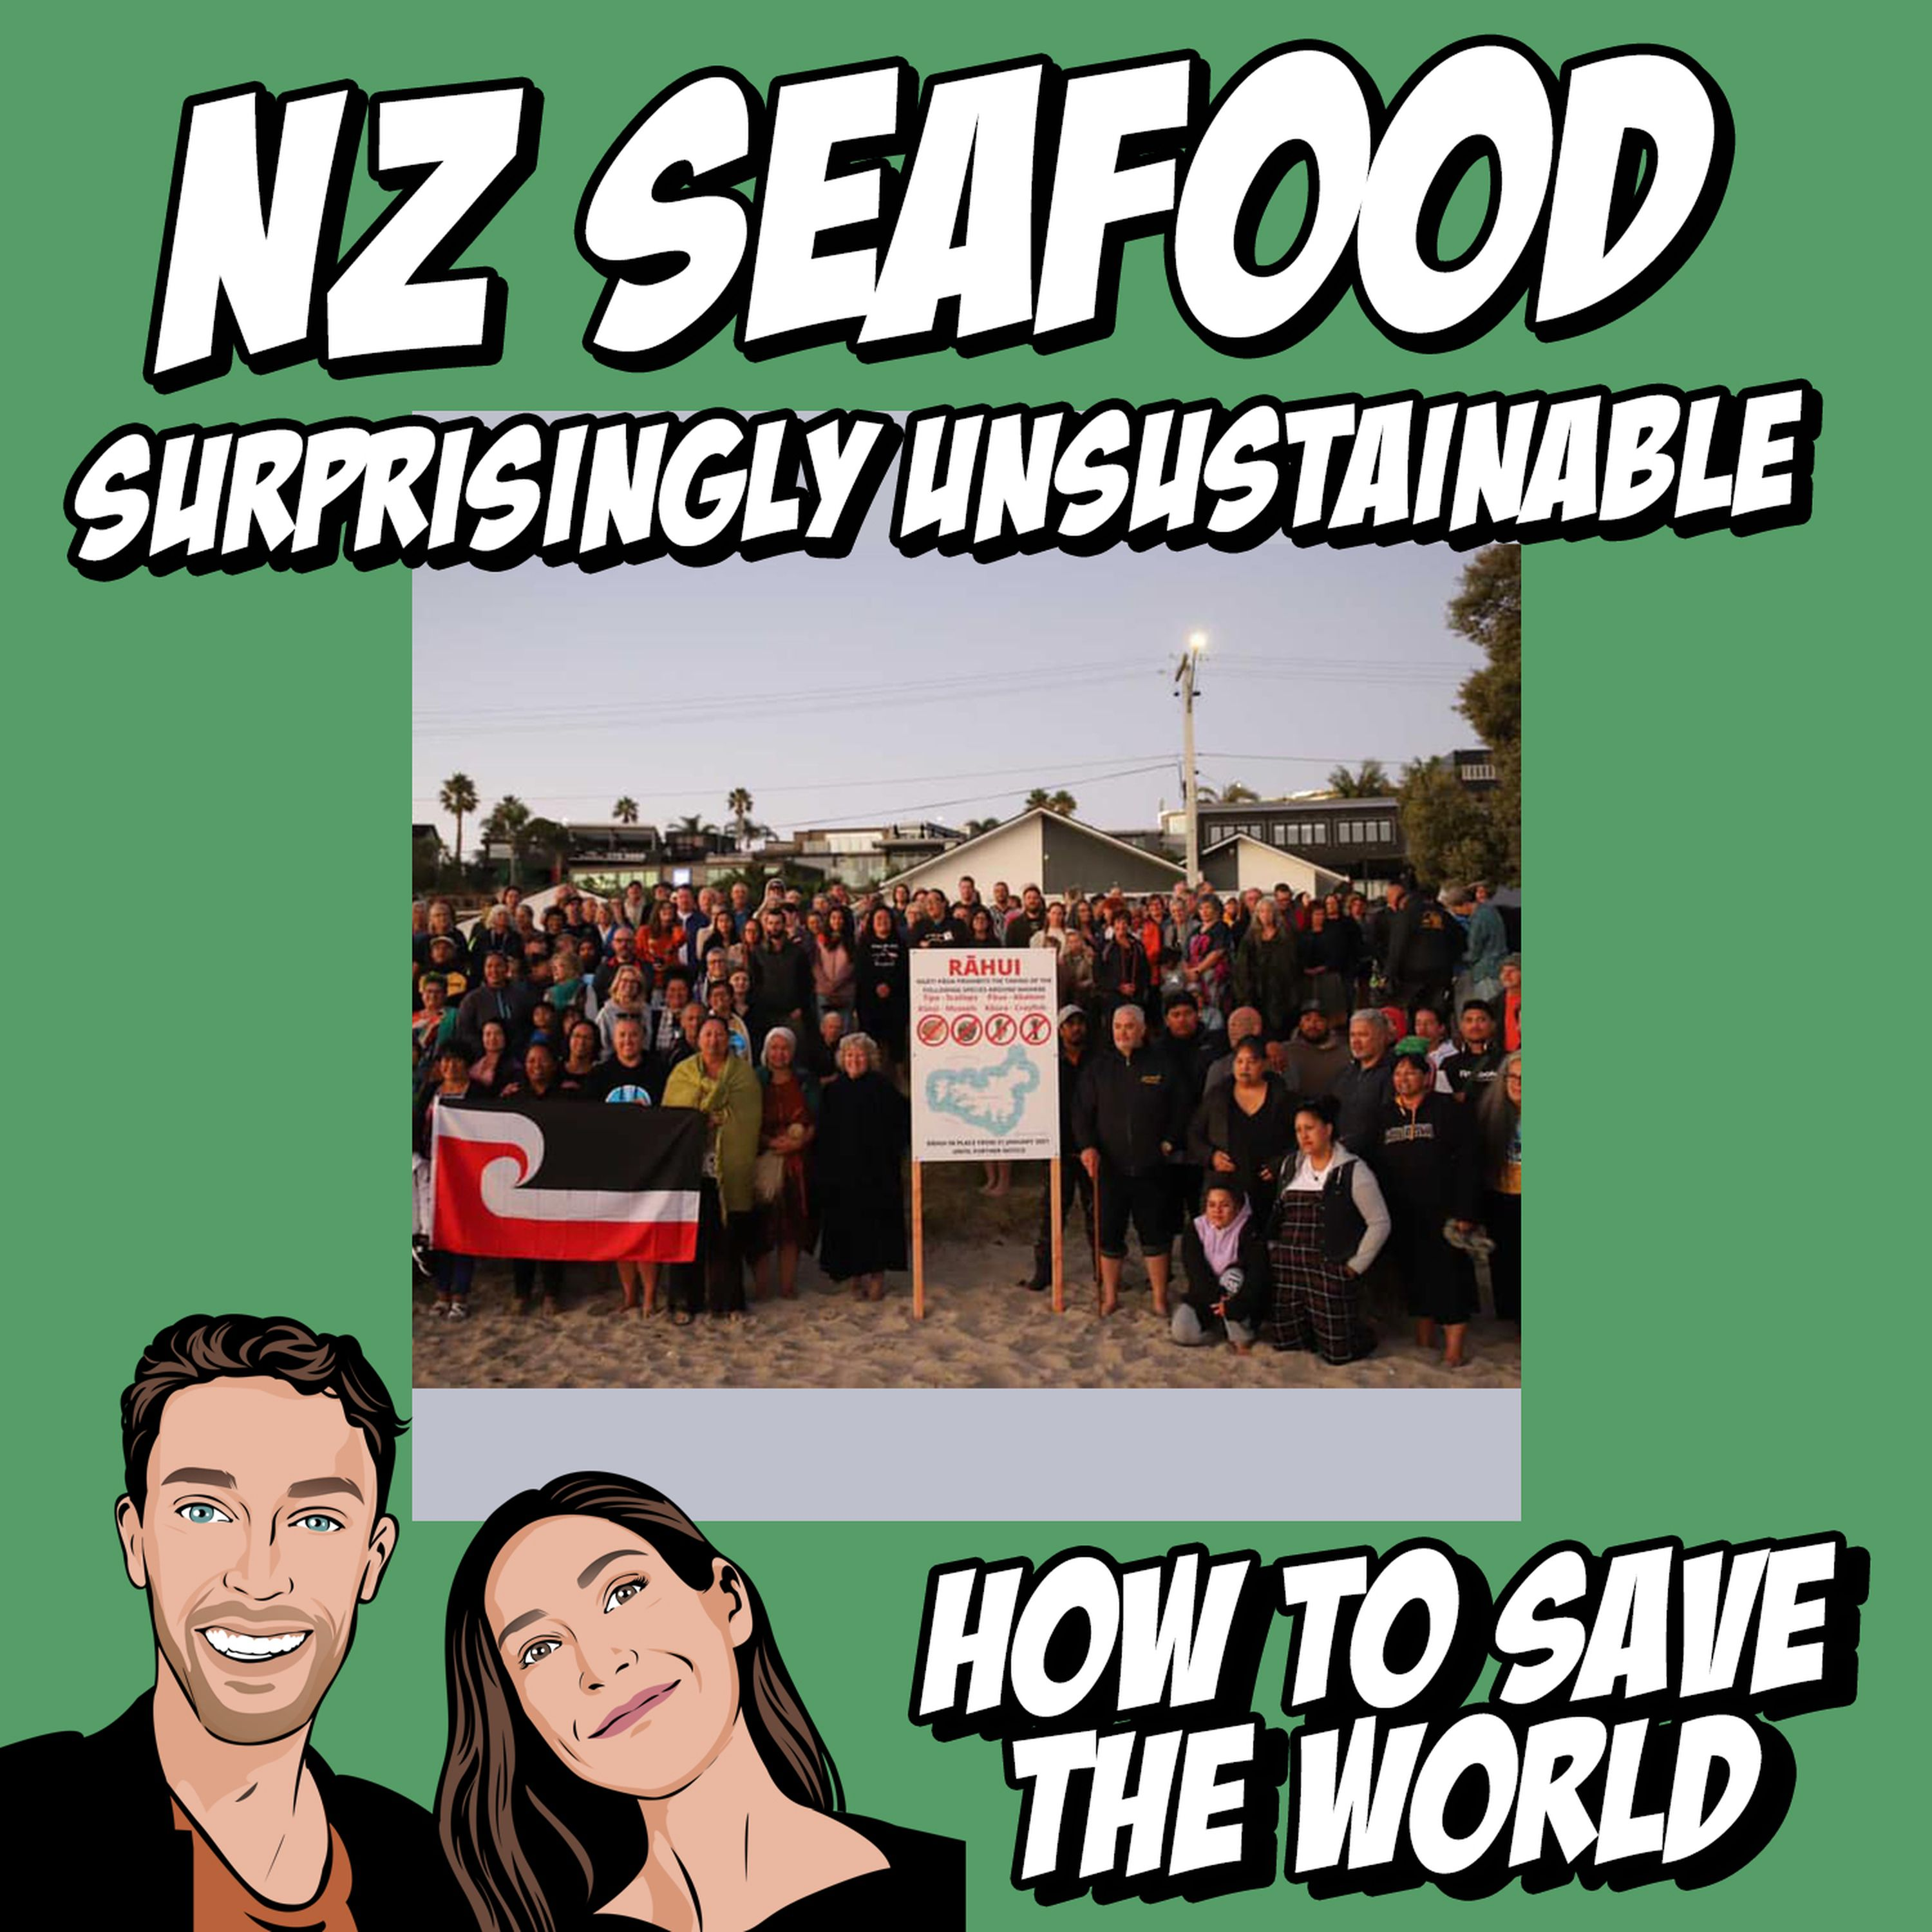 NZ Seafood: Surprisingly Unsustainable